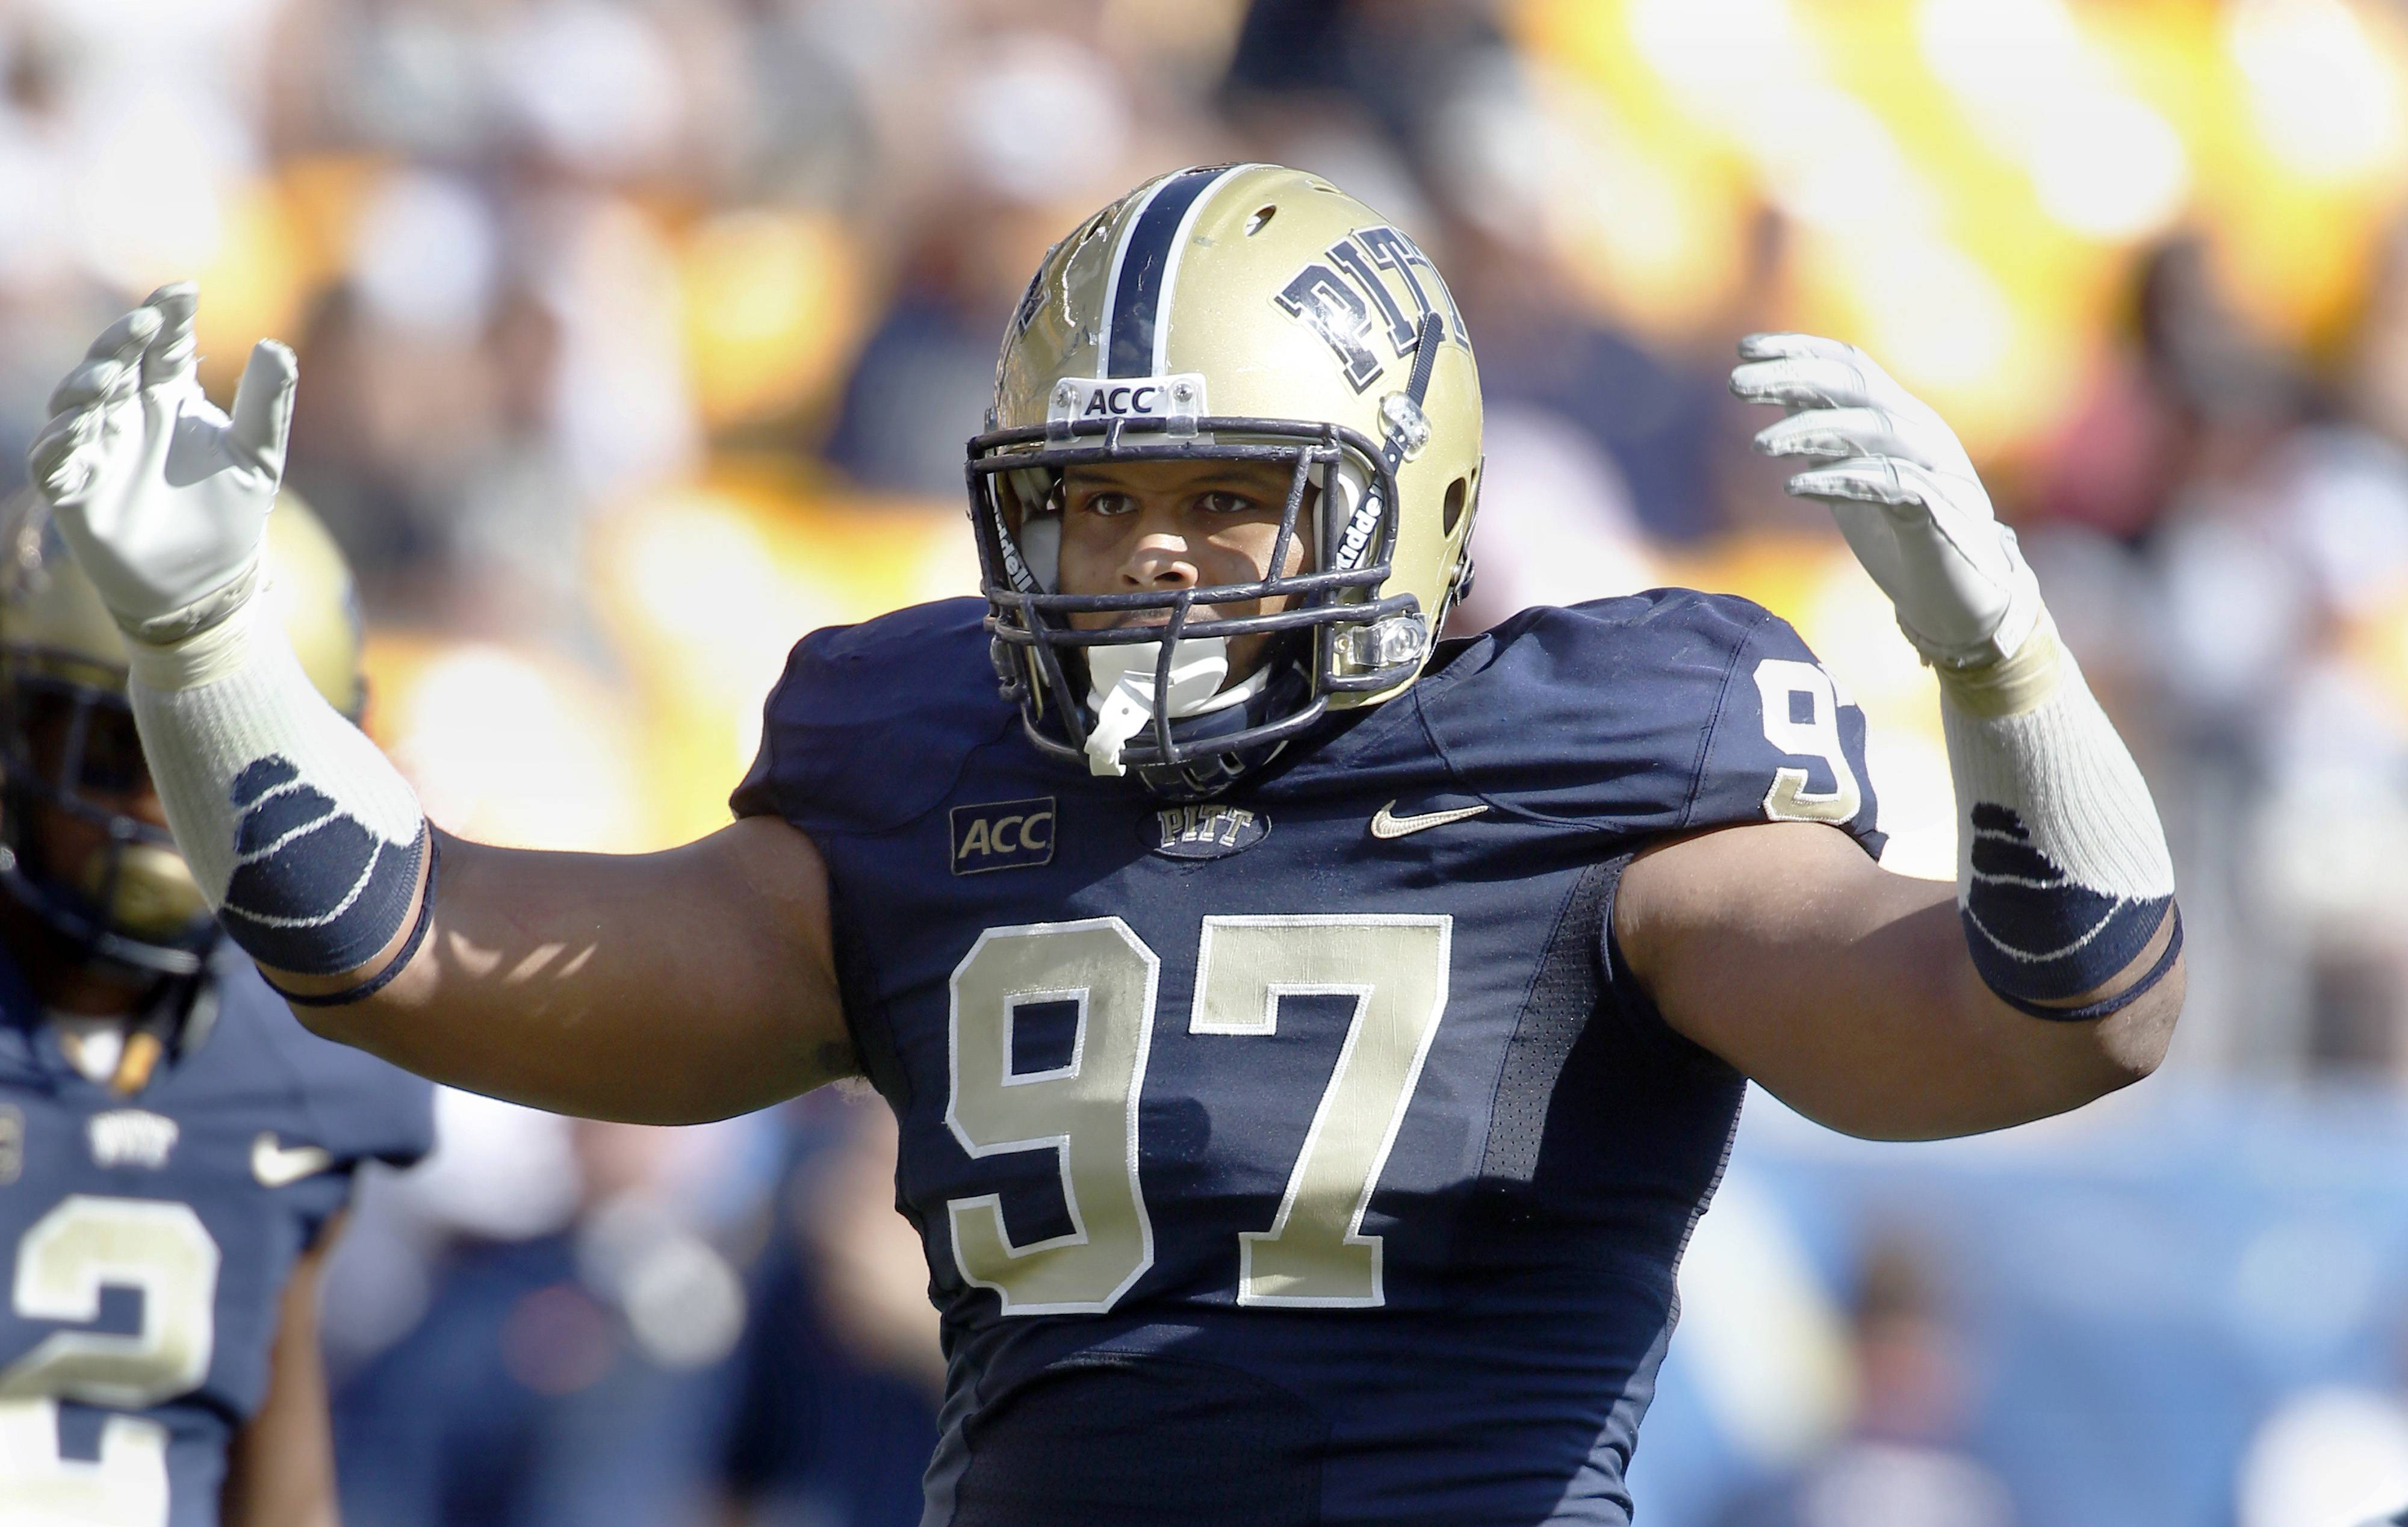 Will Bears grab Pitt's Donald in draft?